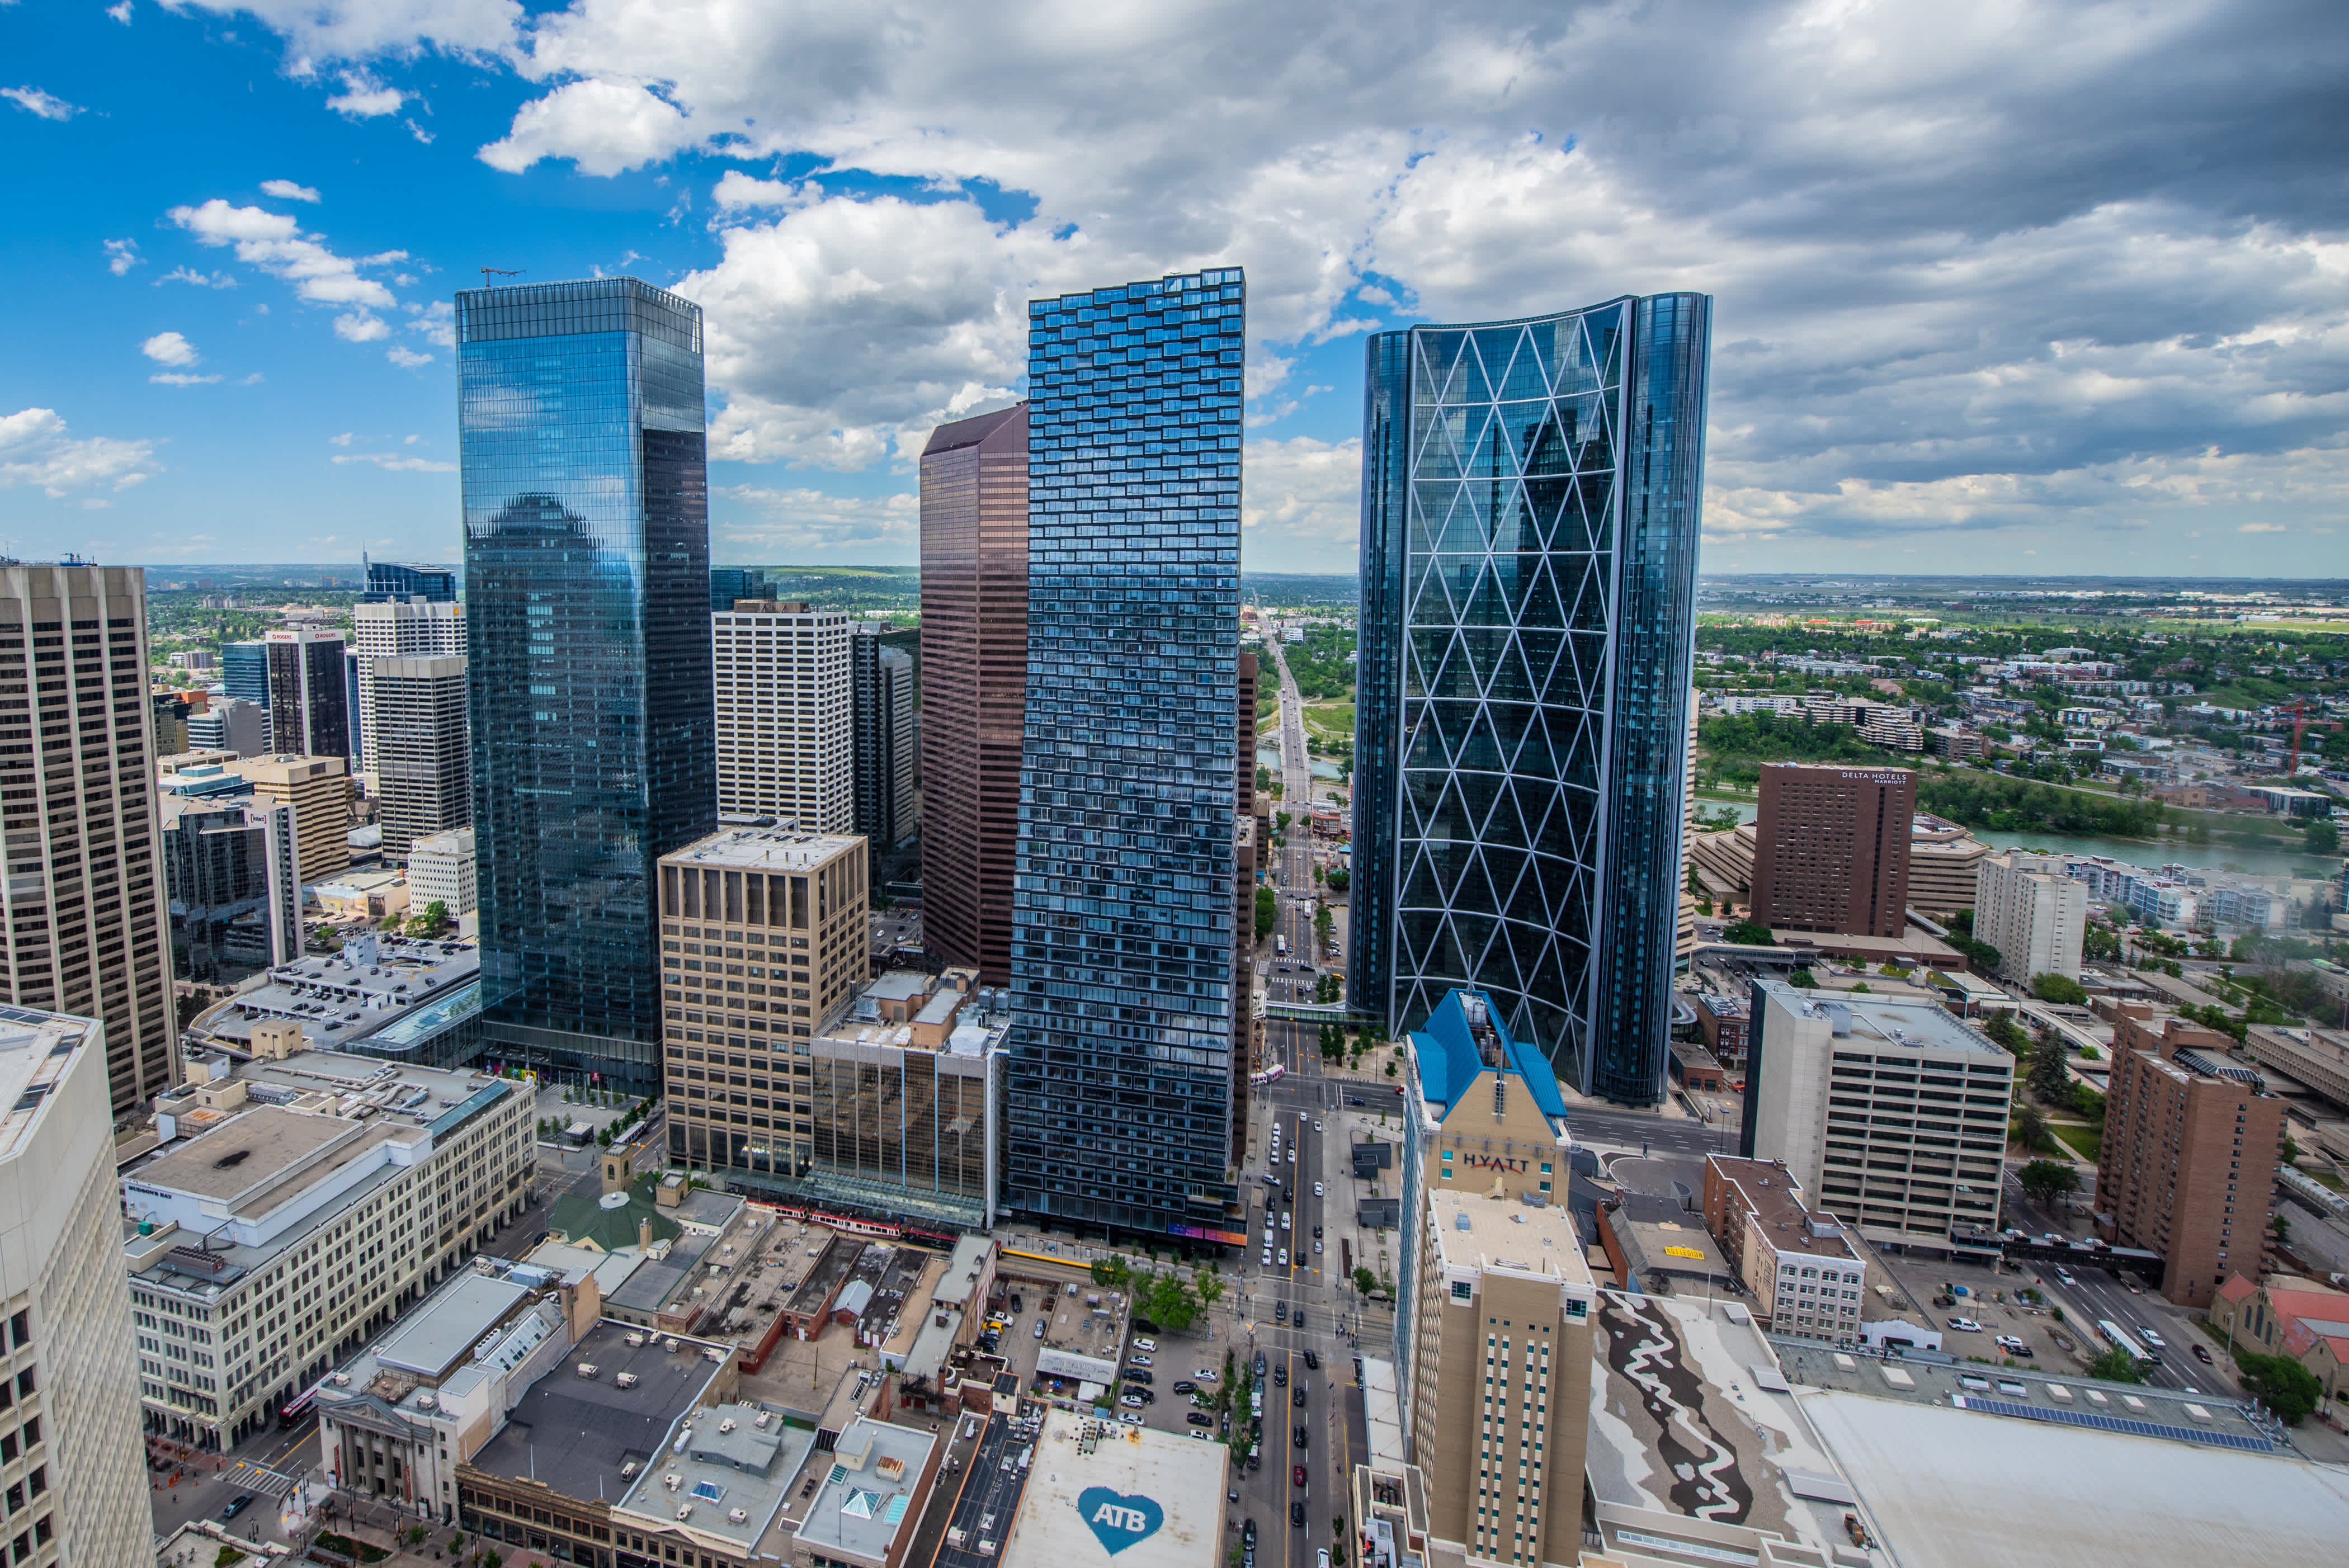 An aerial shot of buildings in Calgary, featuring the new TELUS Sky